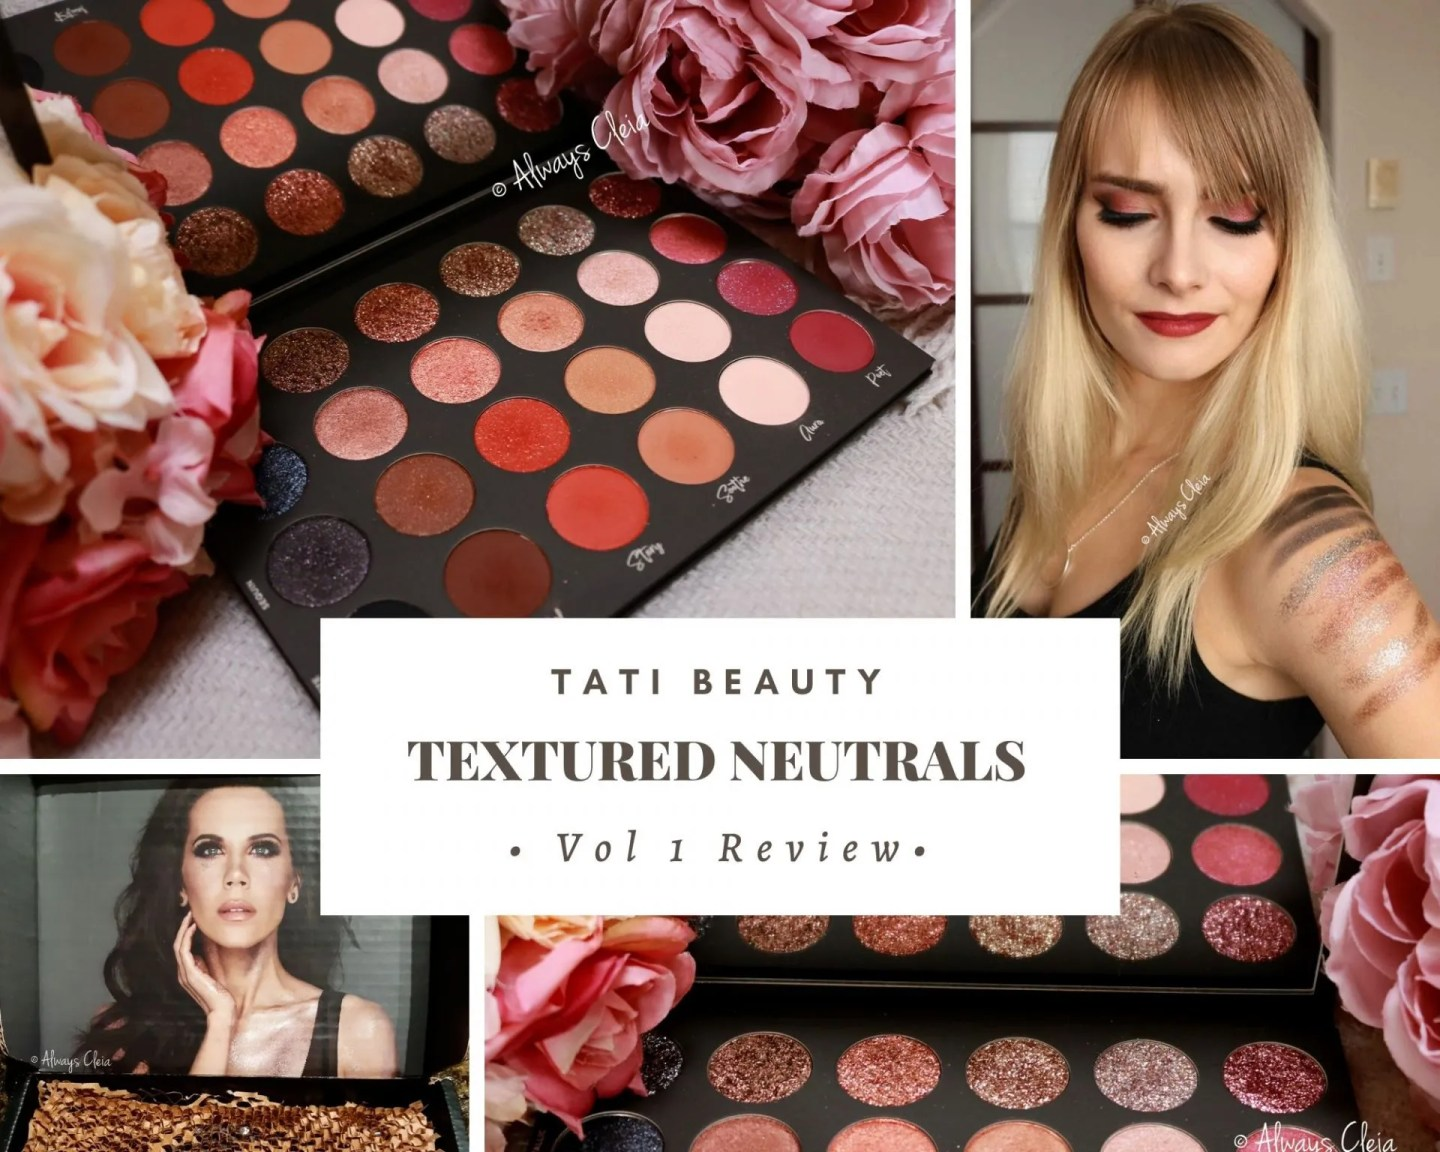 Tati Beauty Textured Neutrals Palette Review + Swatches + Looks